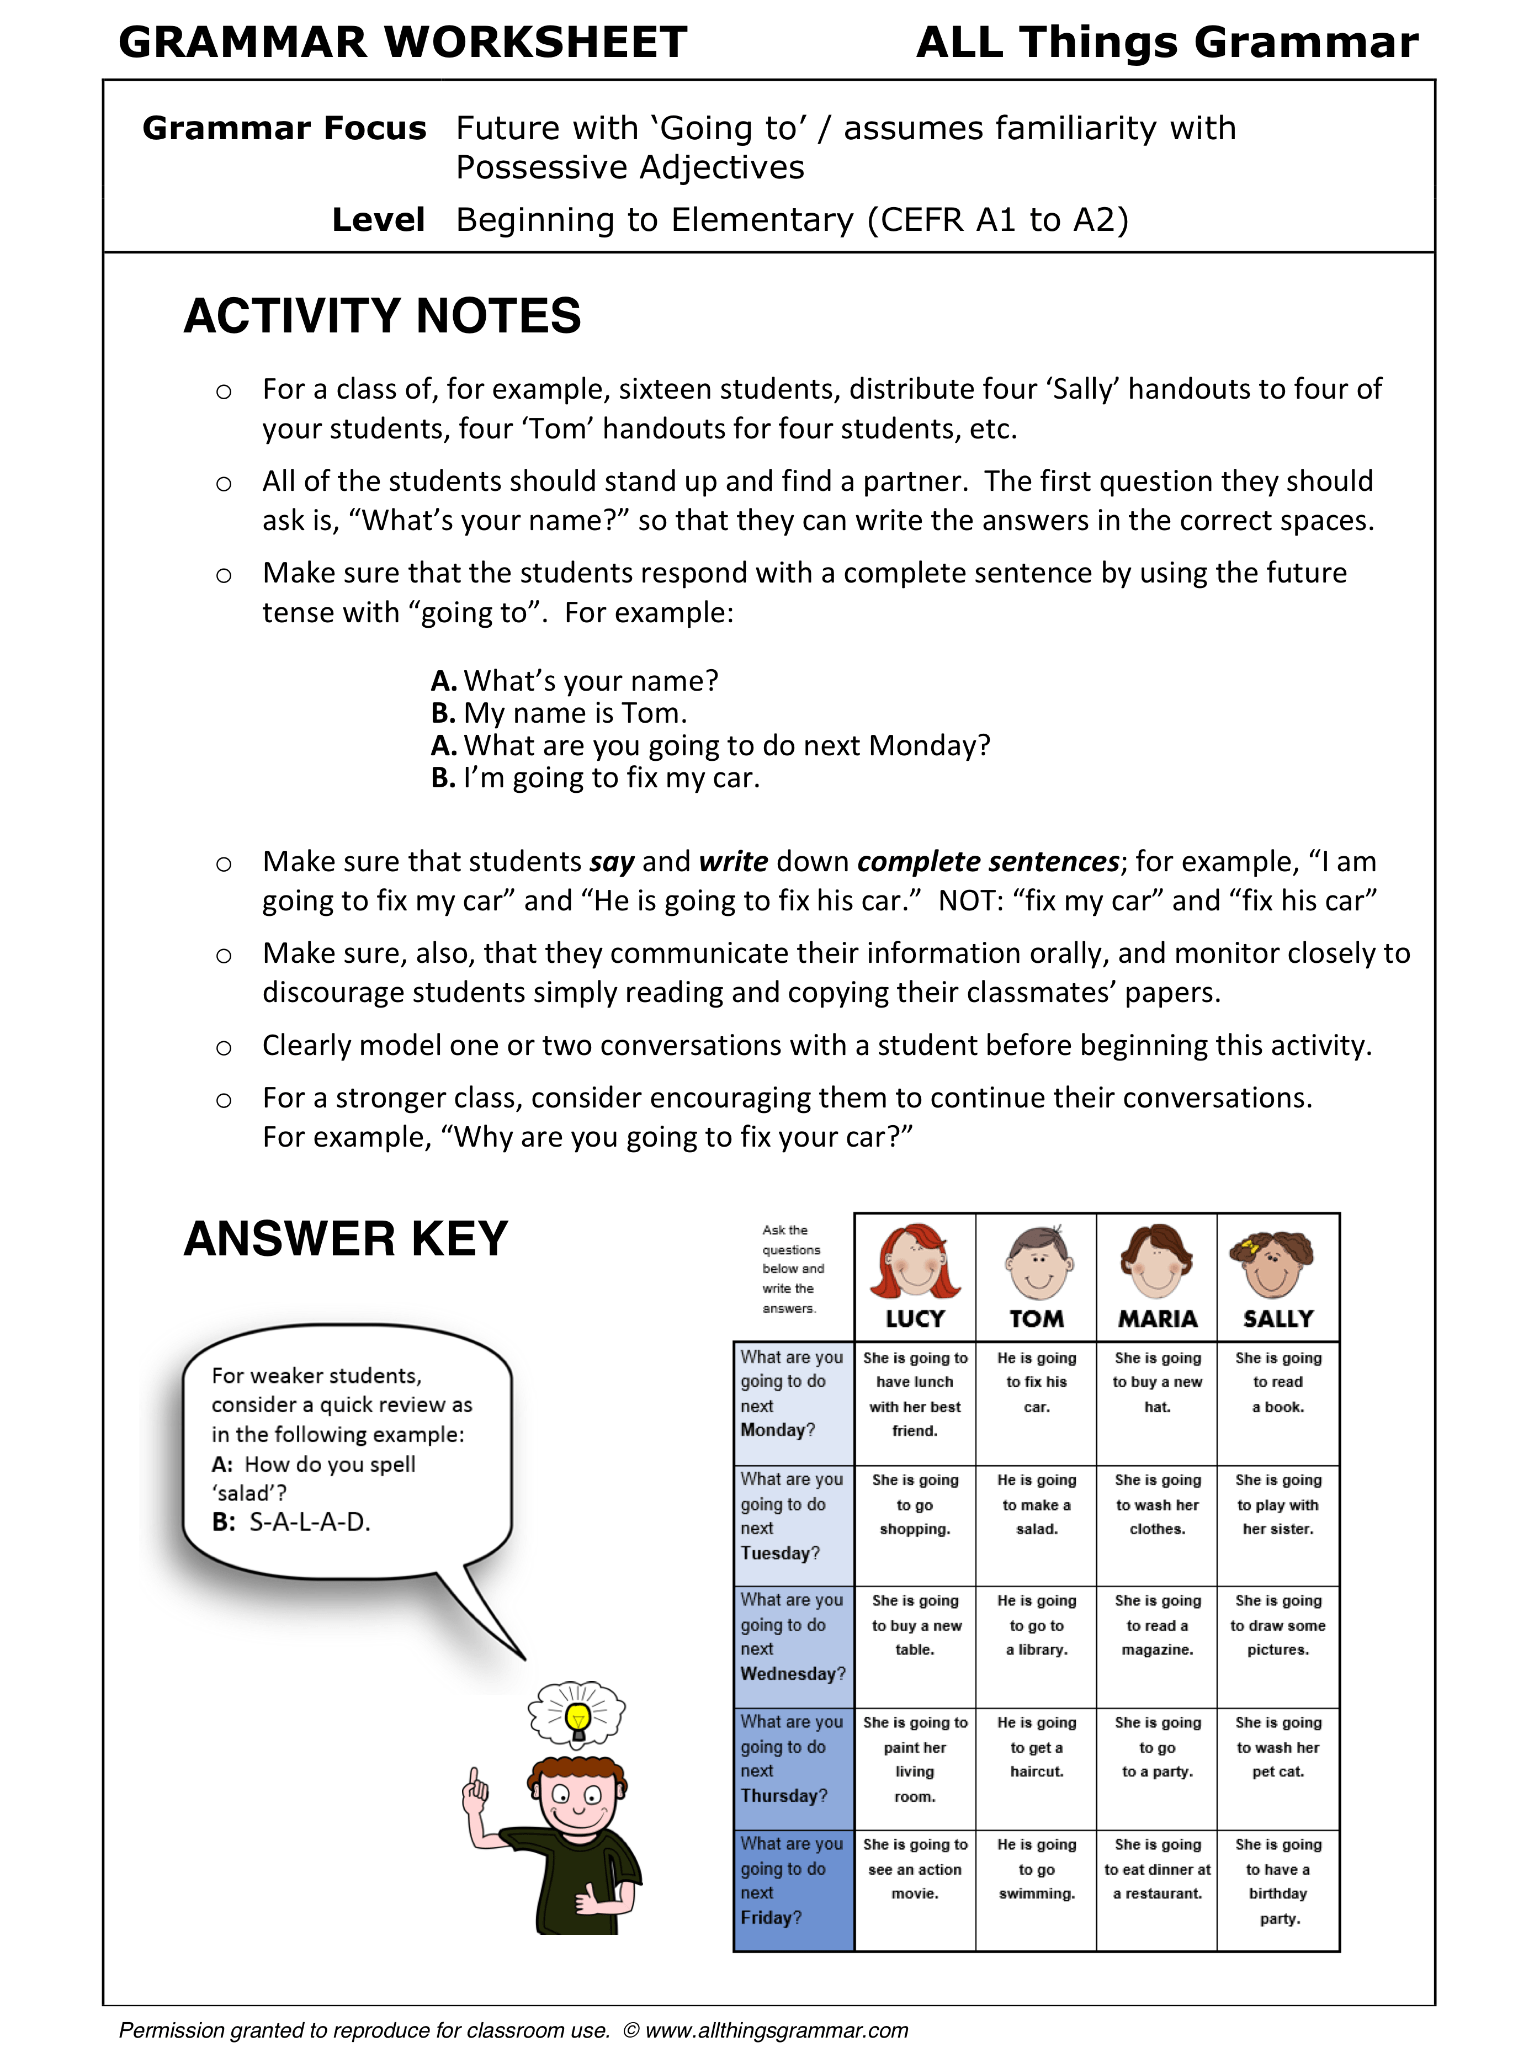 English Grammar Worksheet Info Gap Grammar Focus Future With Going To Assumes Familiarity